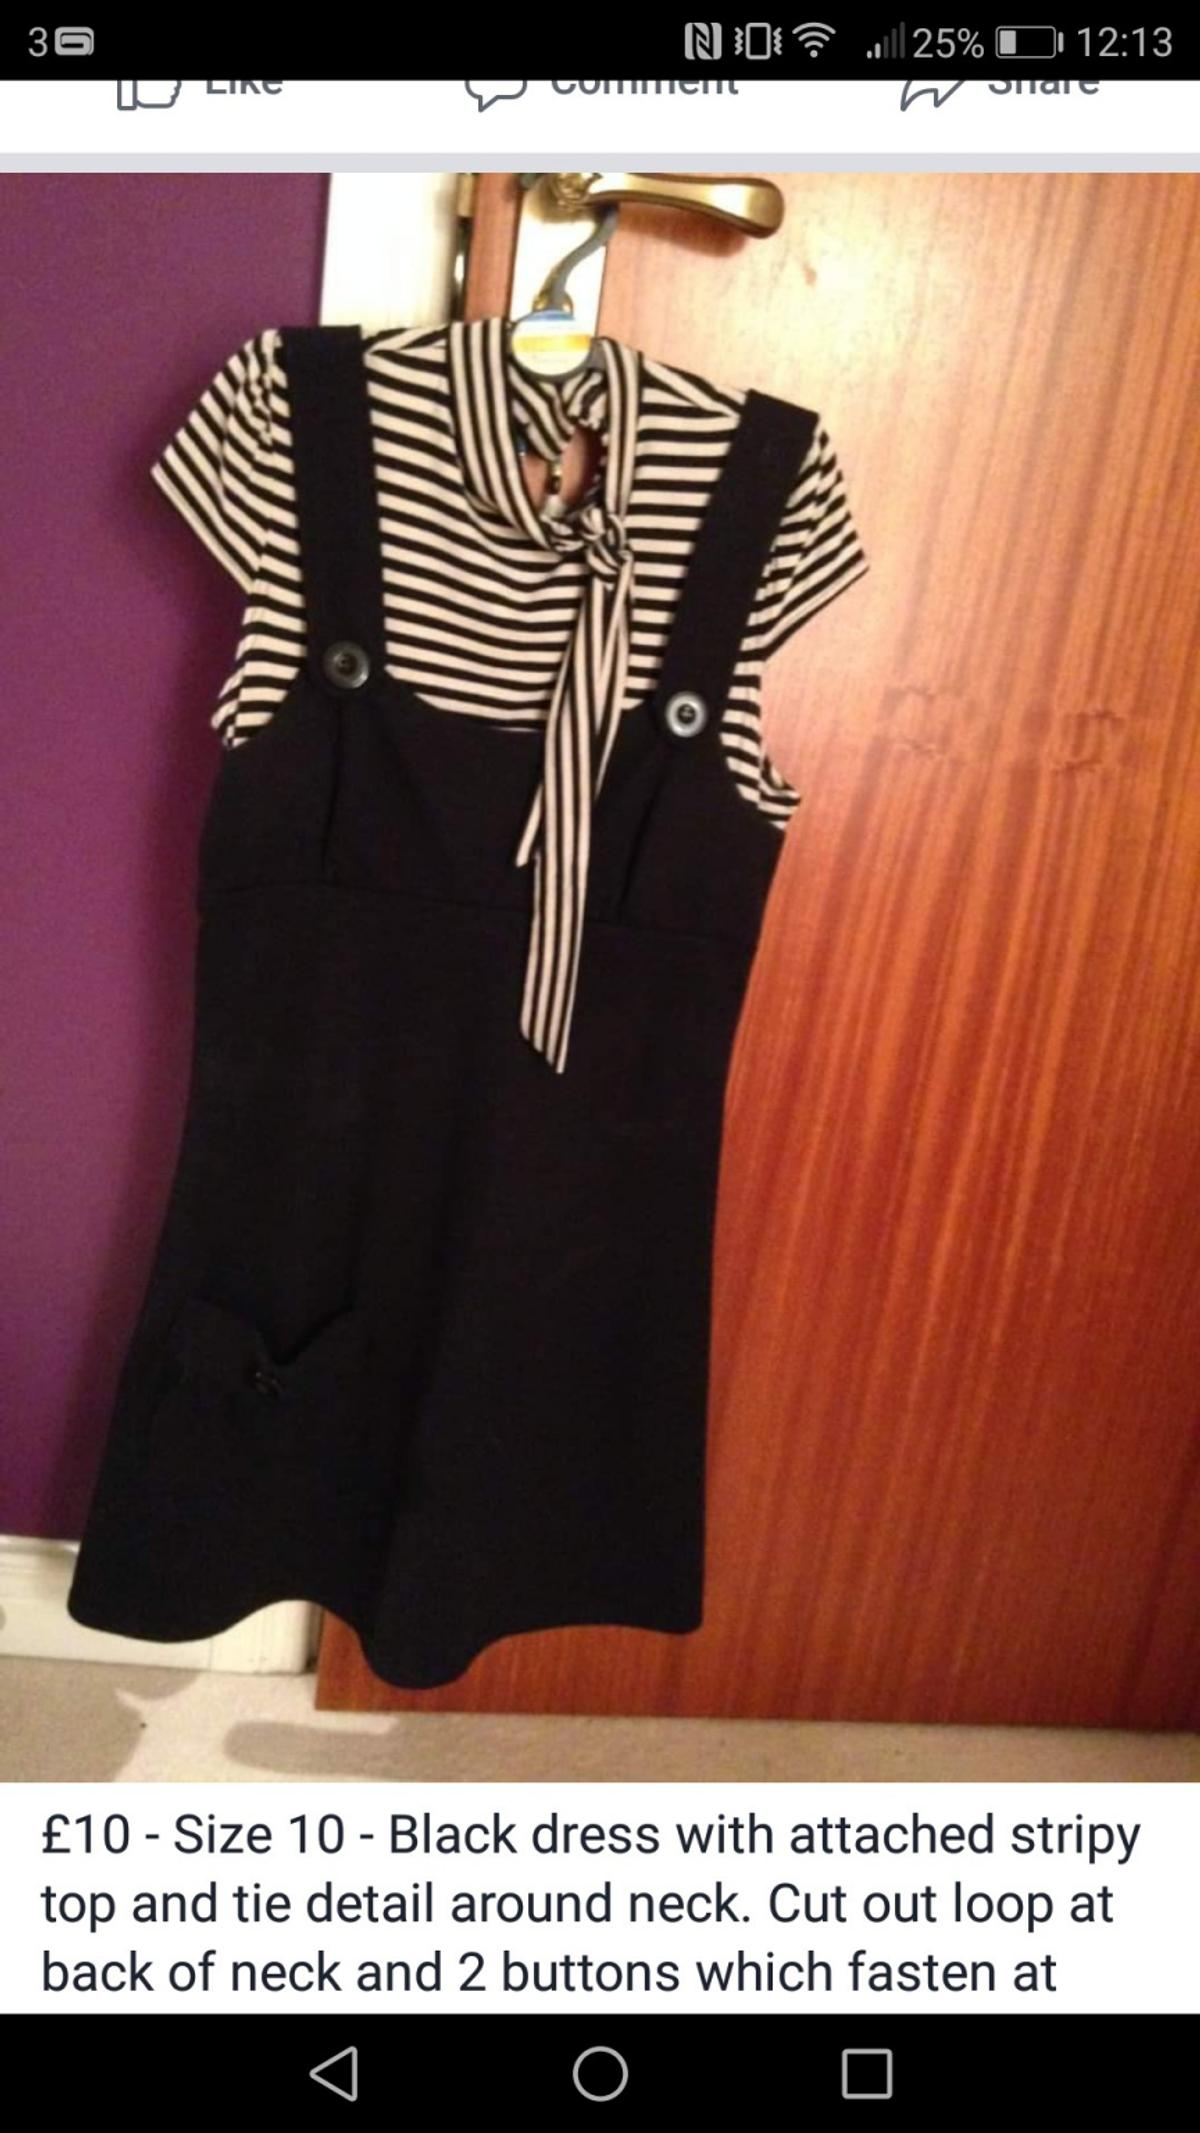 black dress with stripy top attached